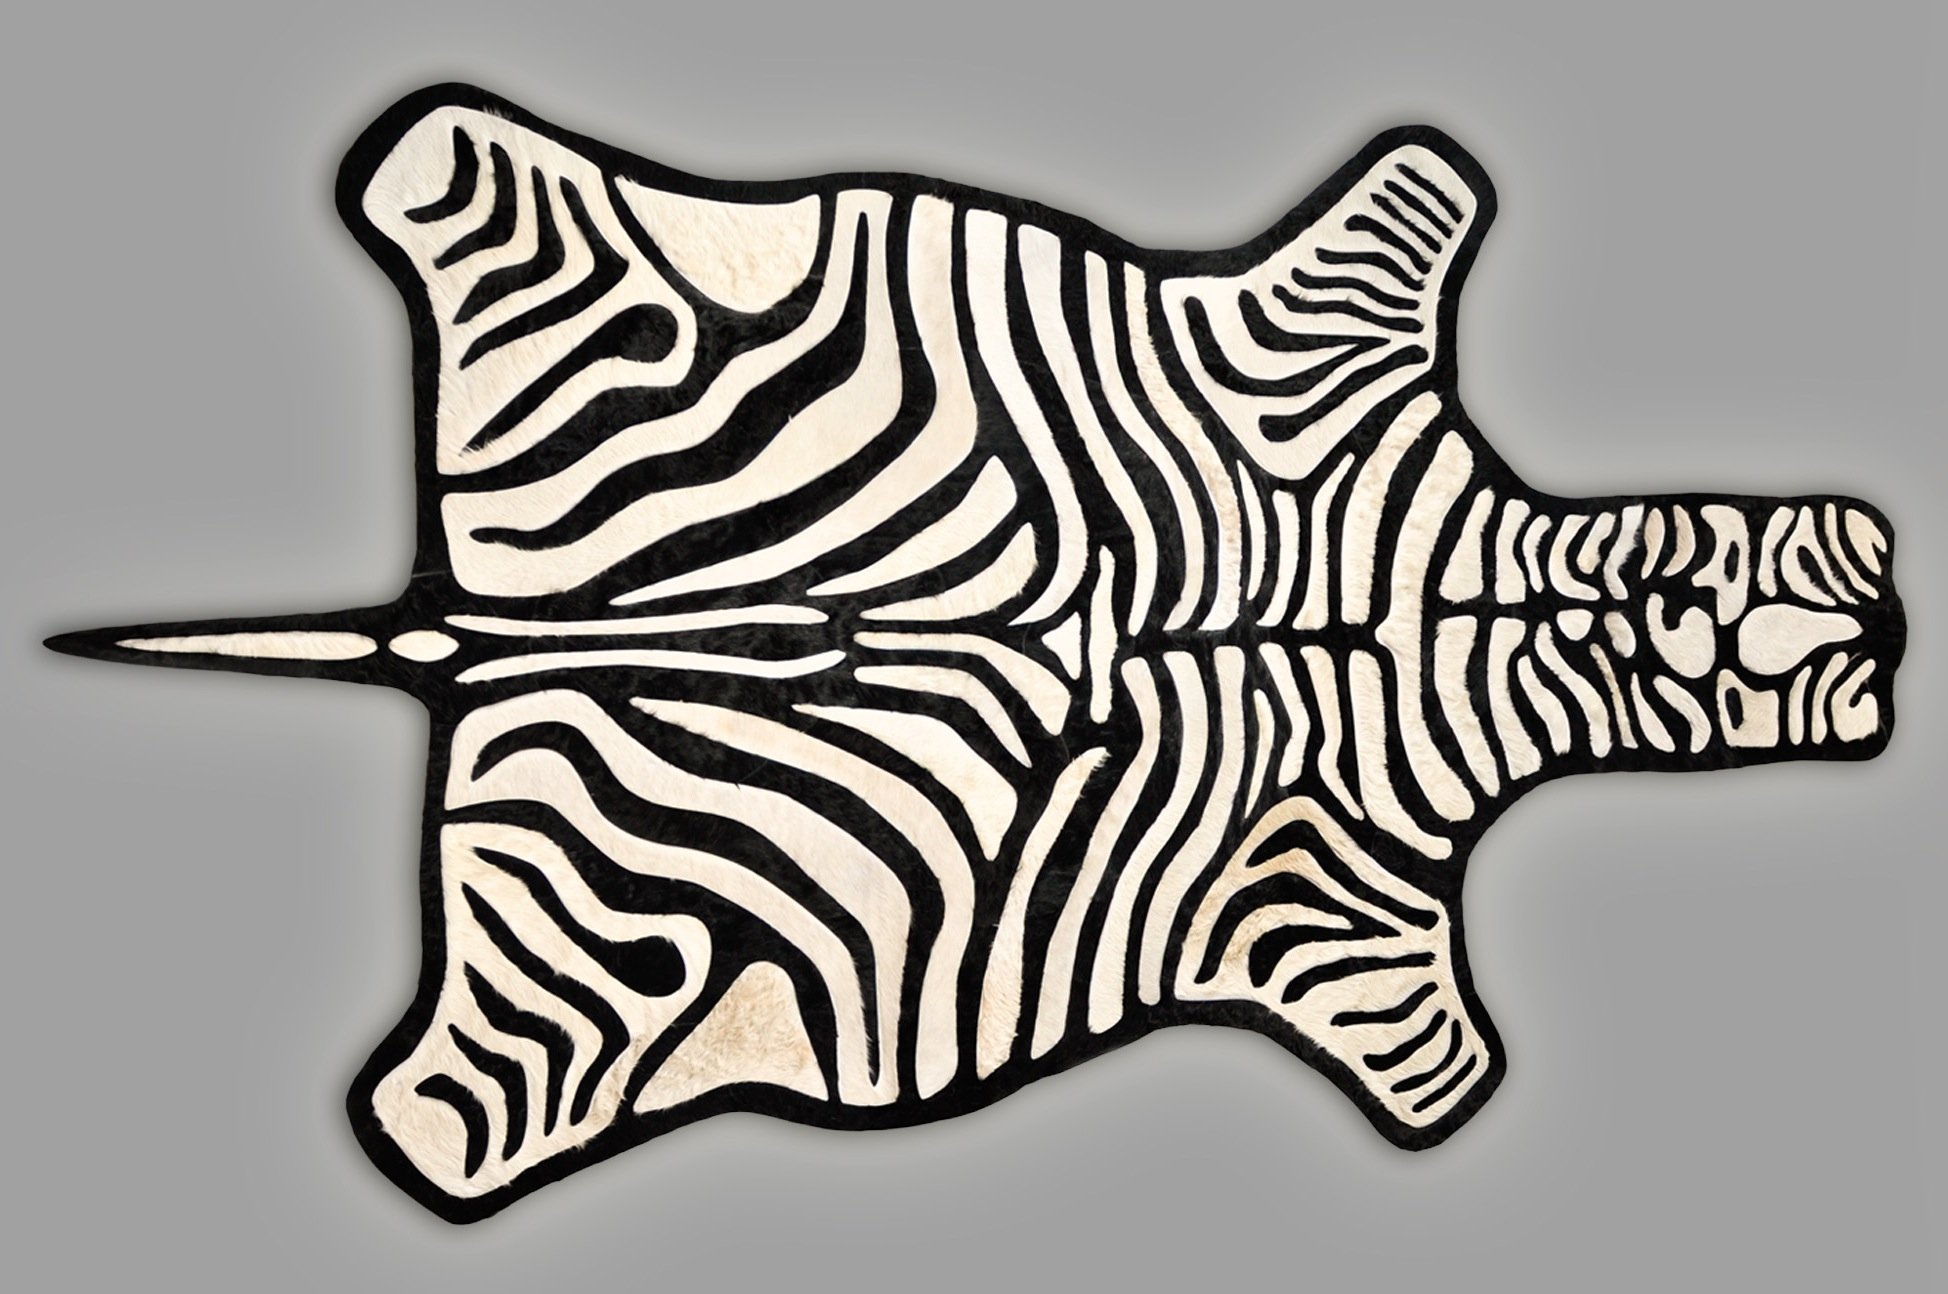 Incredible zebra rug for floorings and rugs ideas with zebra skin rug